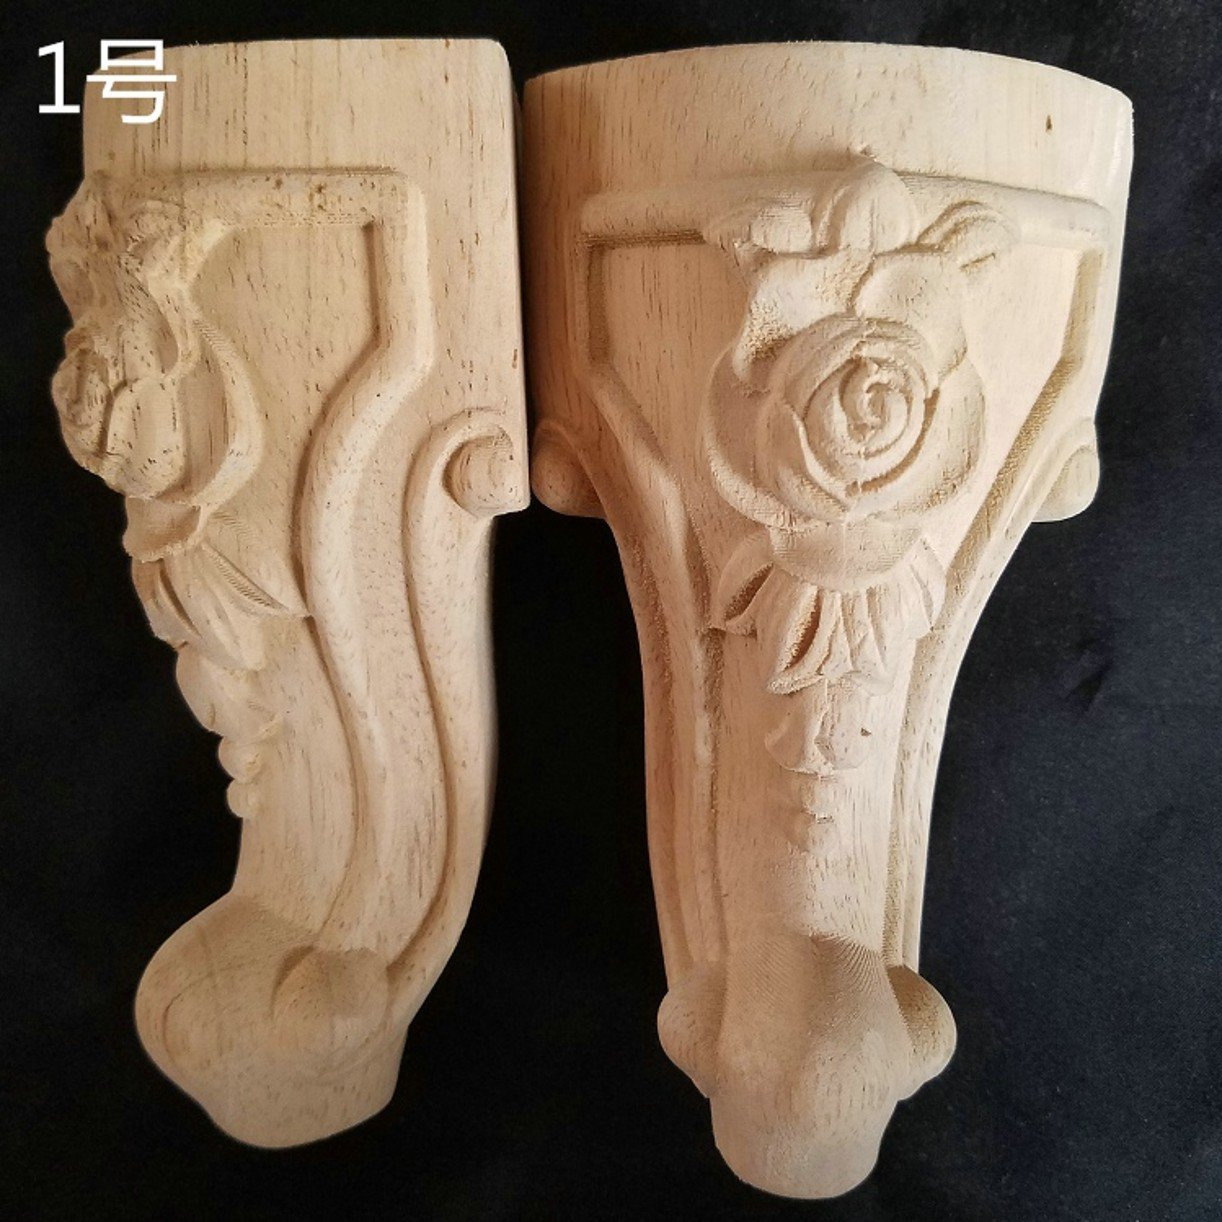 WellieSTR Set of 4pcs Decorative Furniture Leg Decor Carved Wooden Bed  Applique Woodcarving Cabinet Foot Unpainted Miniatures Decal Wood Furniture  ...